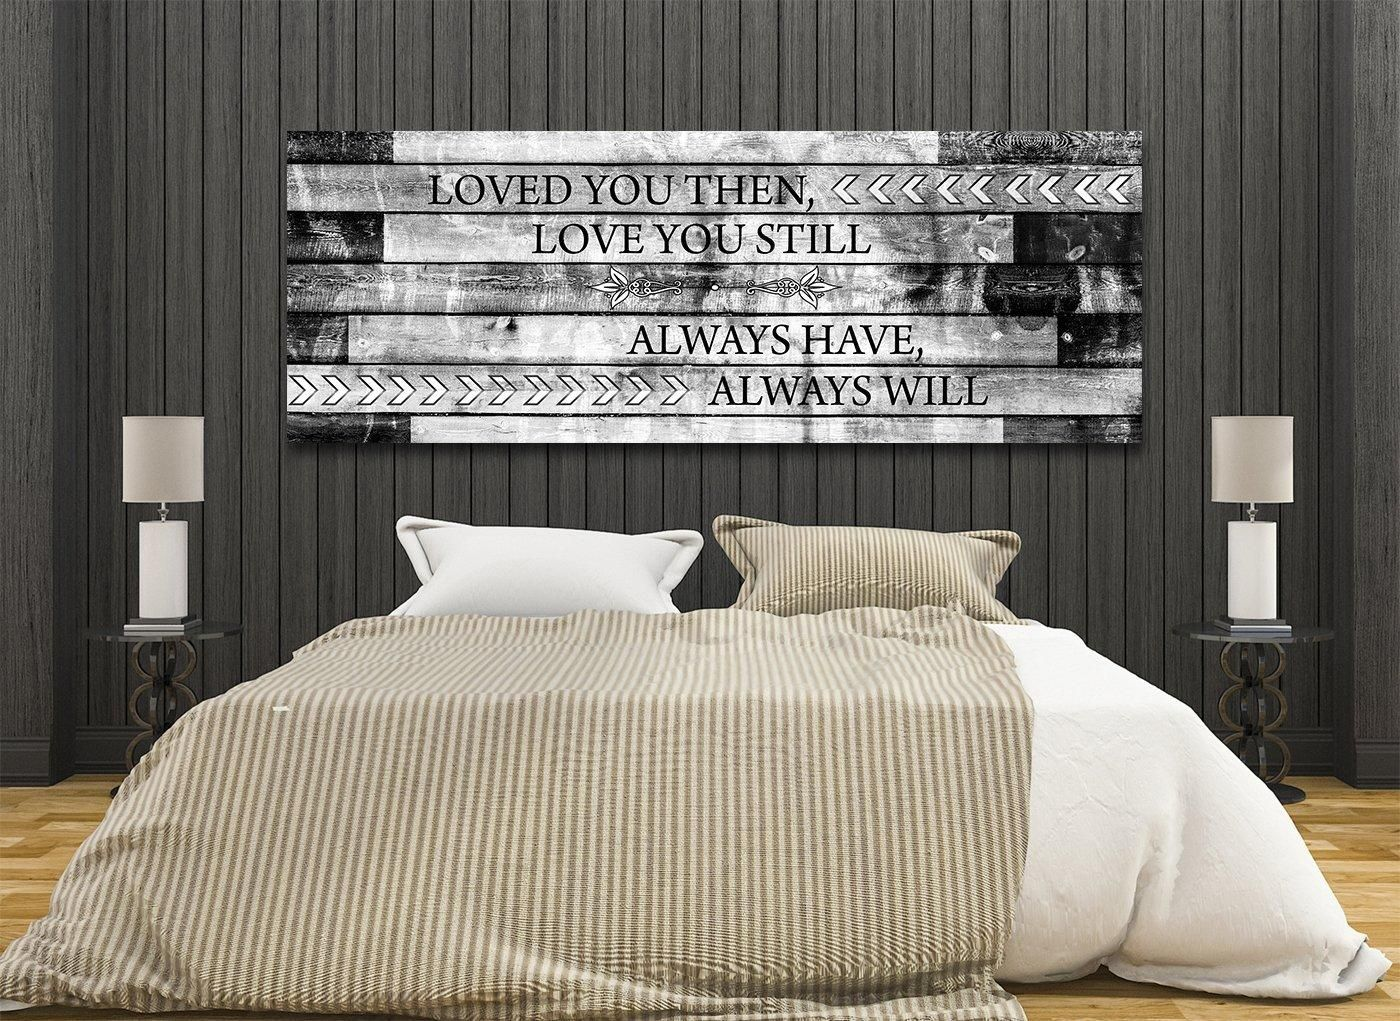 Loved You Then Love You Still Framed Romantic Canvas Wall Art For Couples images